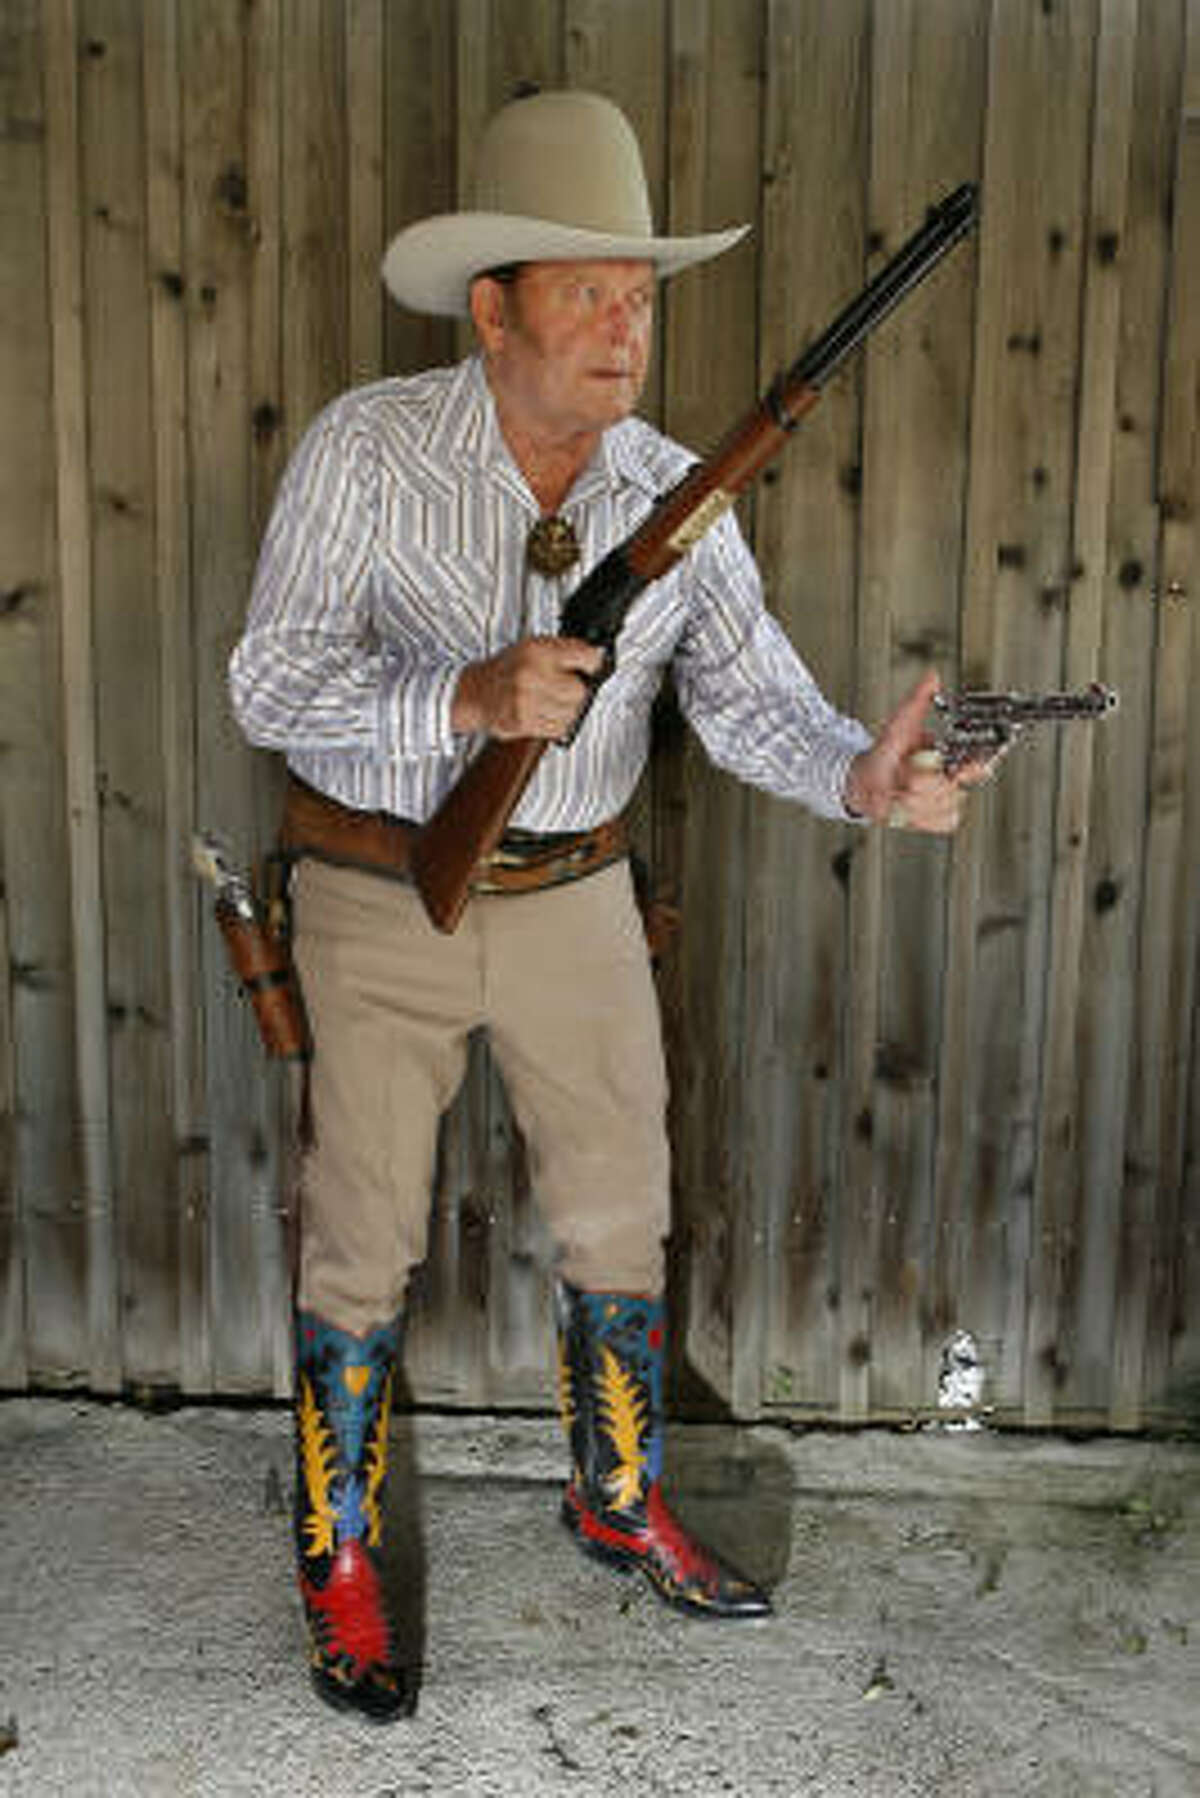 Joe Bowman, an internationally know Wild West marksman, performed in Wild West touring shows here and in Europe.